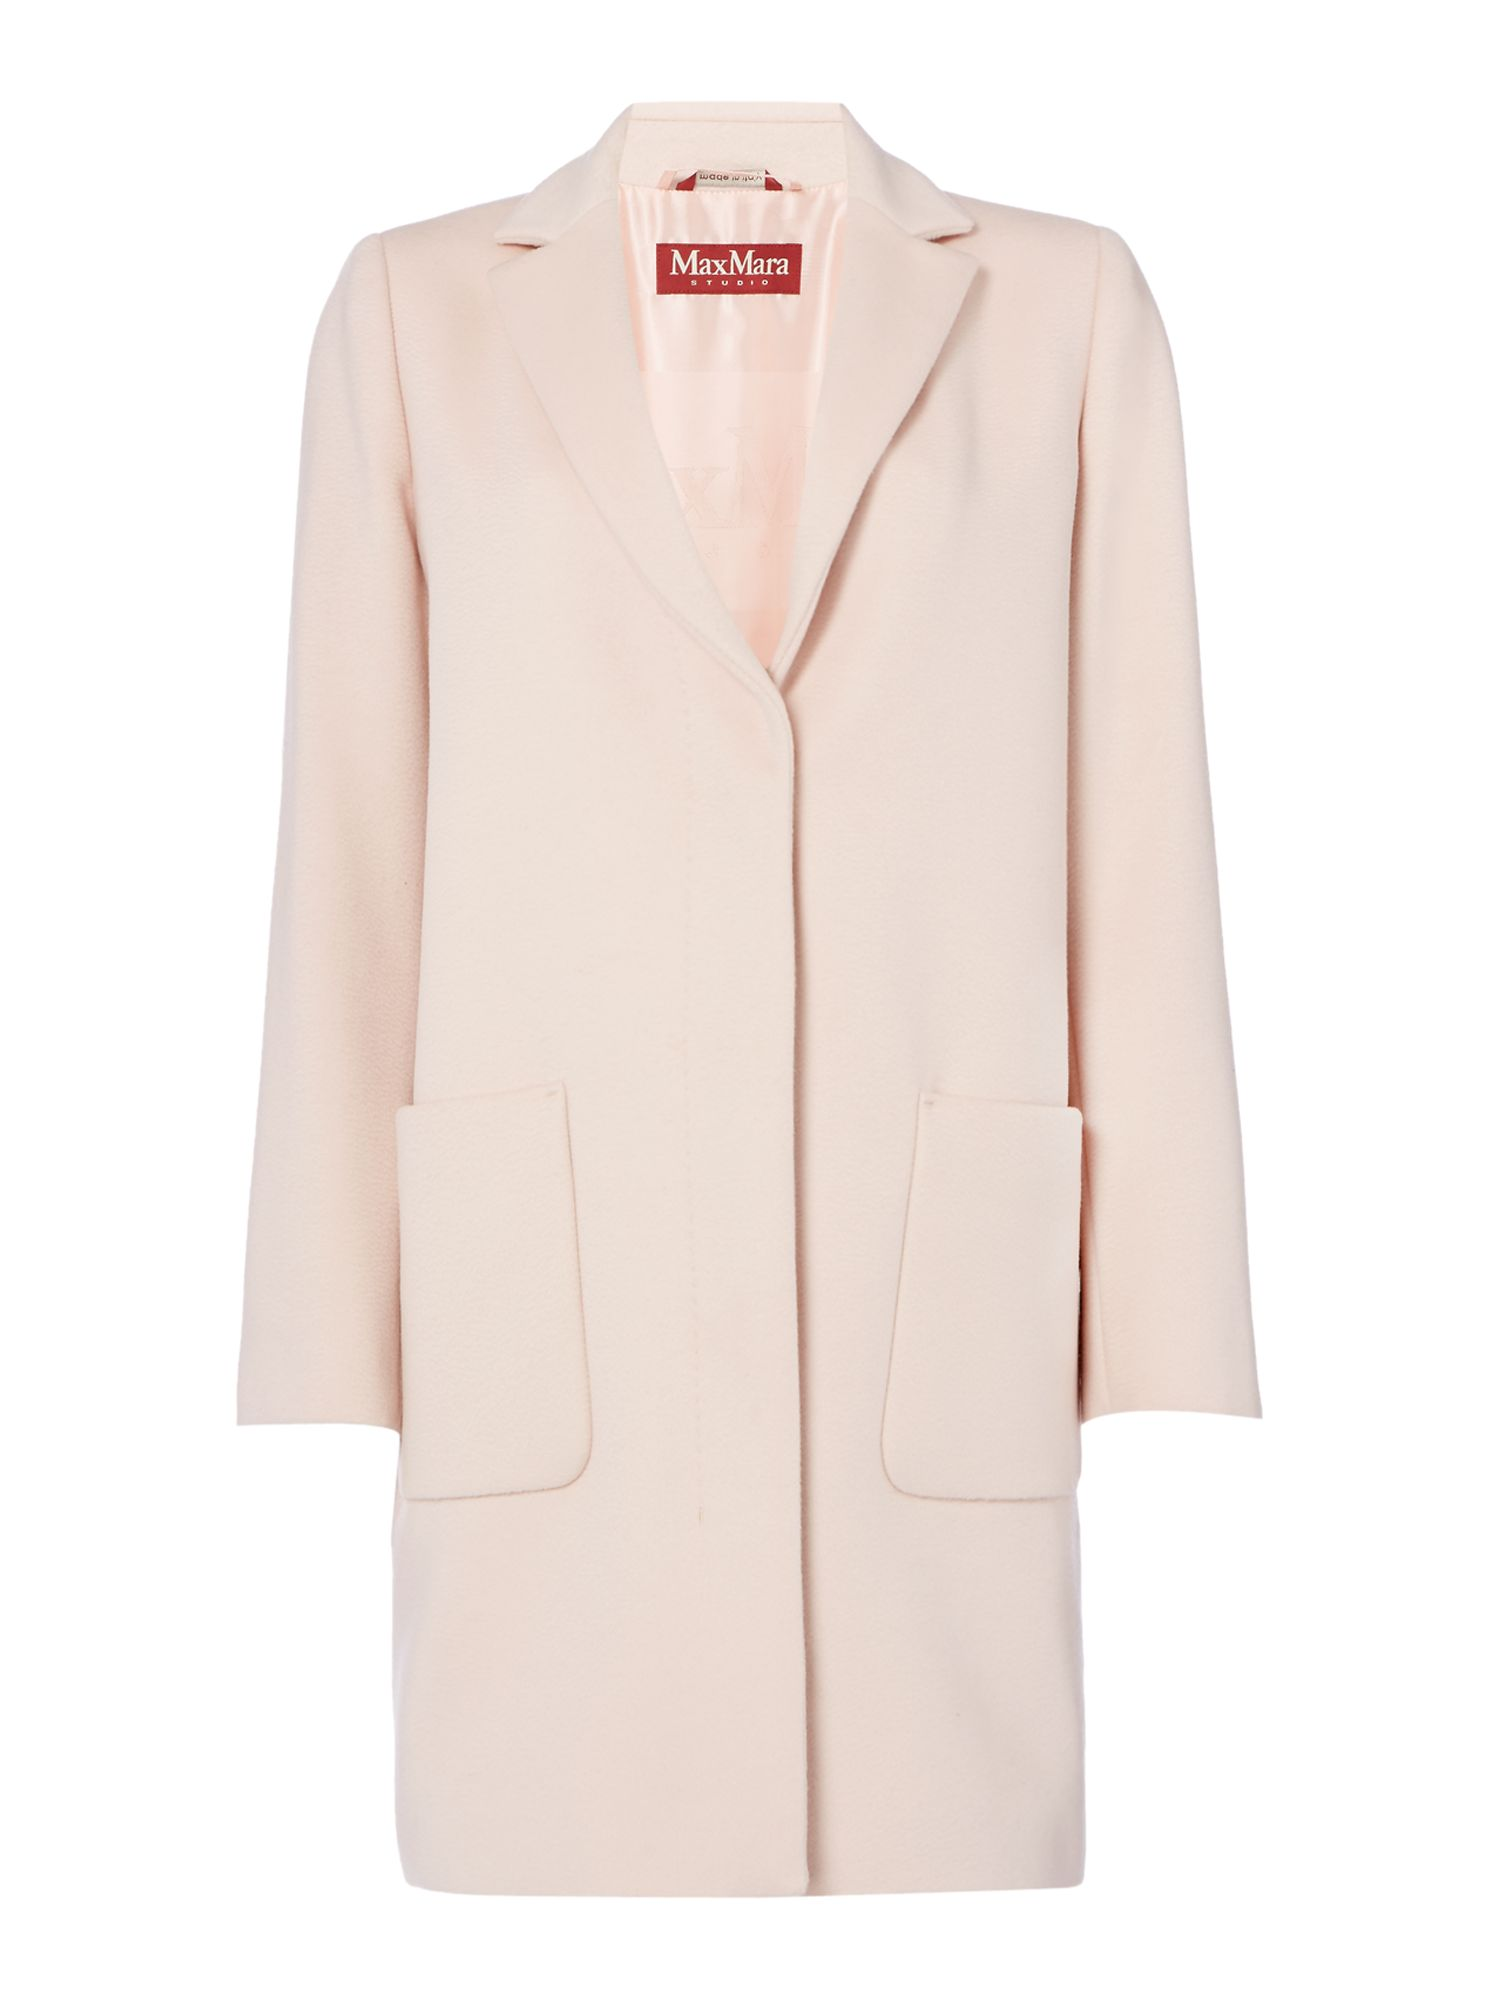 Max Mara Studio Summa two pocket coat, Pink